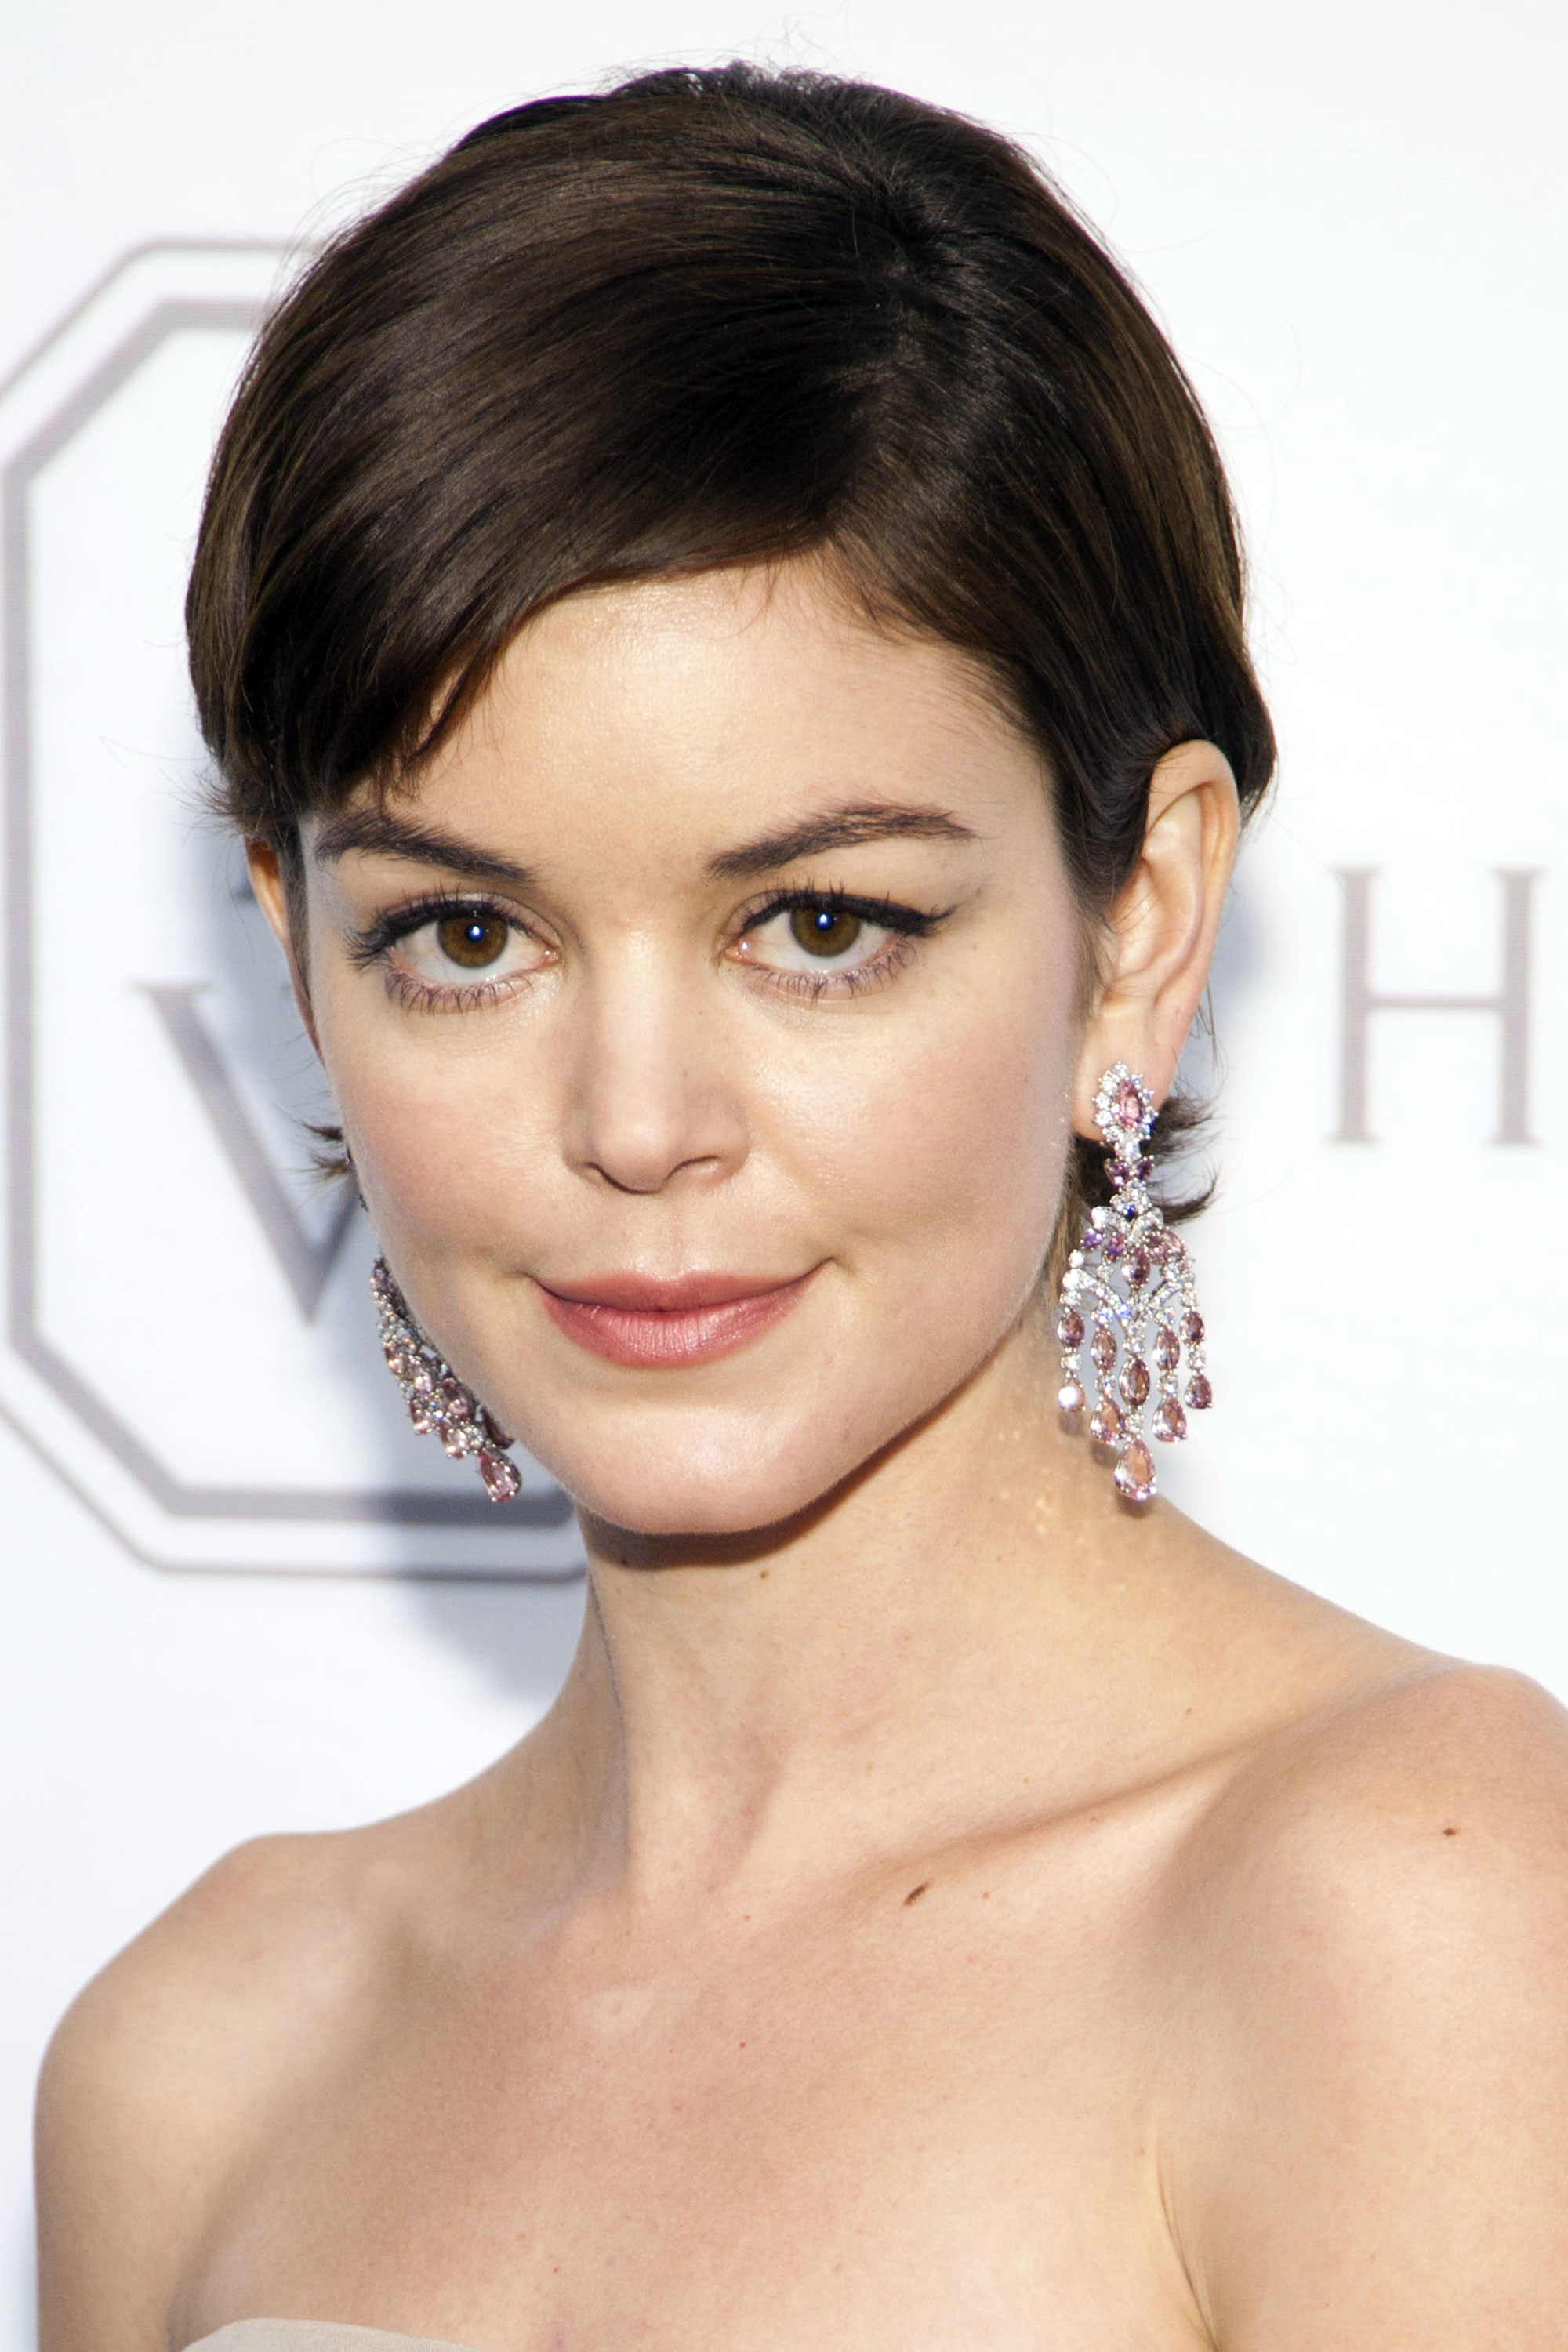 Magnificent 42 Pixie Cuts We Love For 2017 Short Pixie Hairstyles From Short Hairstyles Gunalazisus